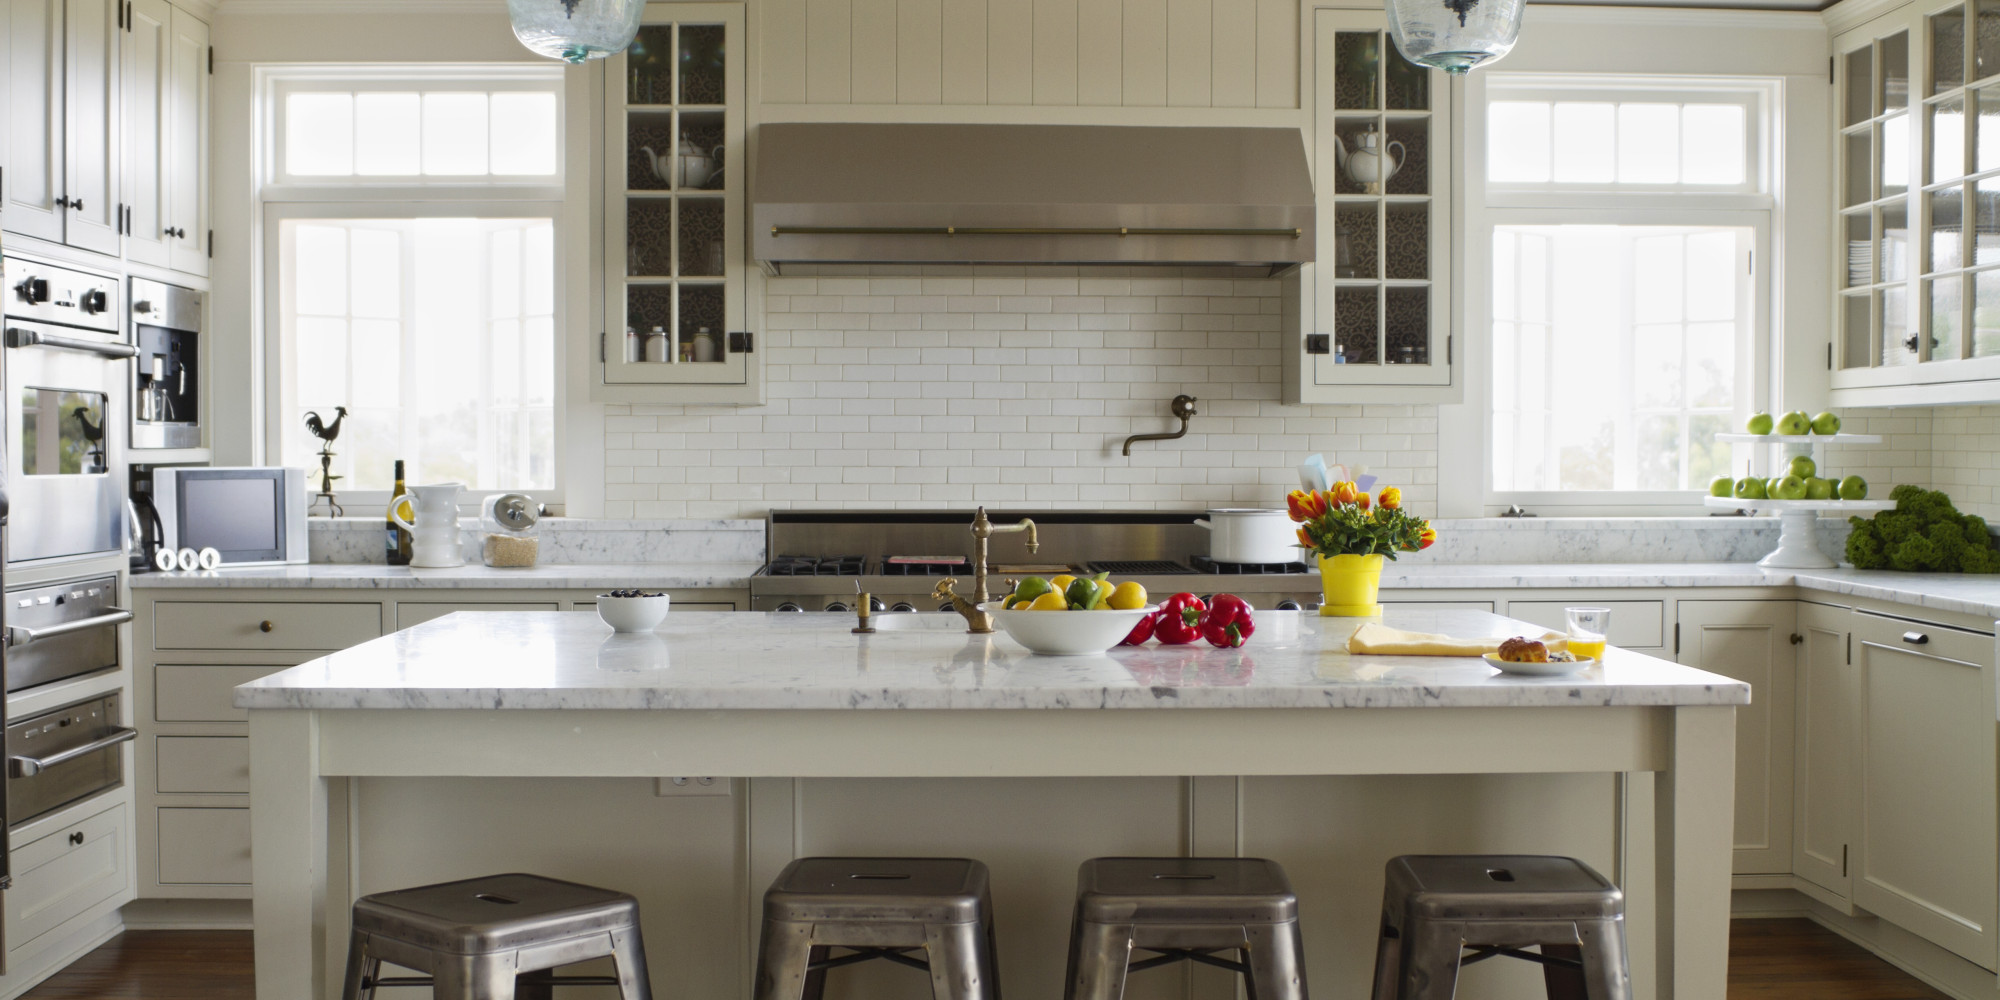 The 3 biggest kitchen trends of 2014 might surprise you Kitchen cabinet finishes 2014